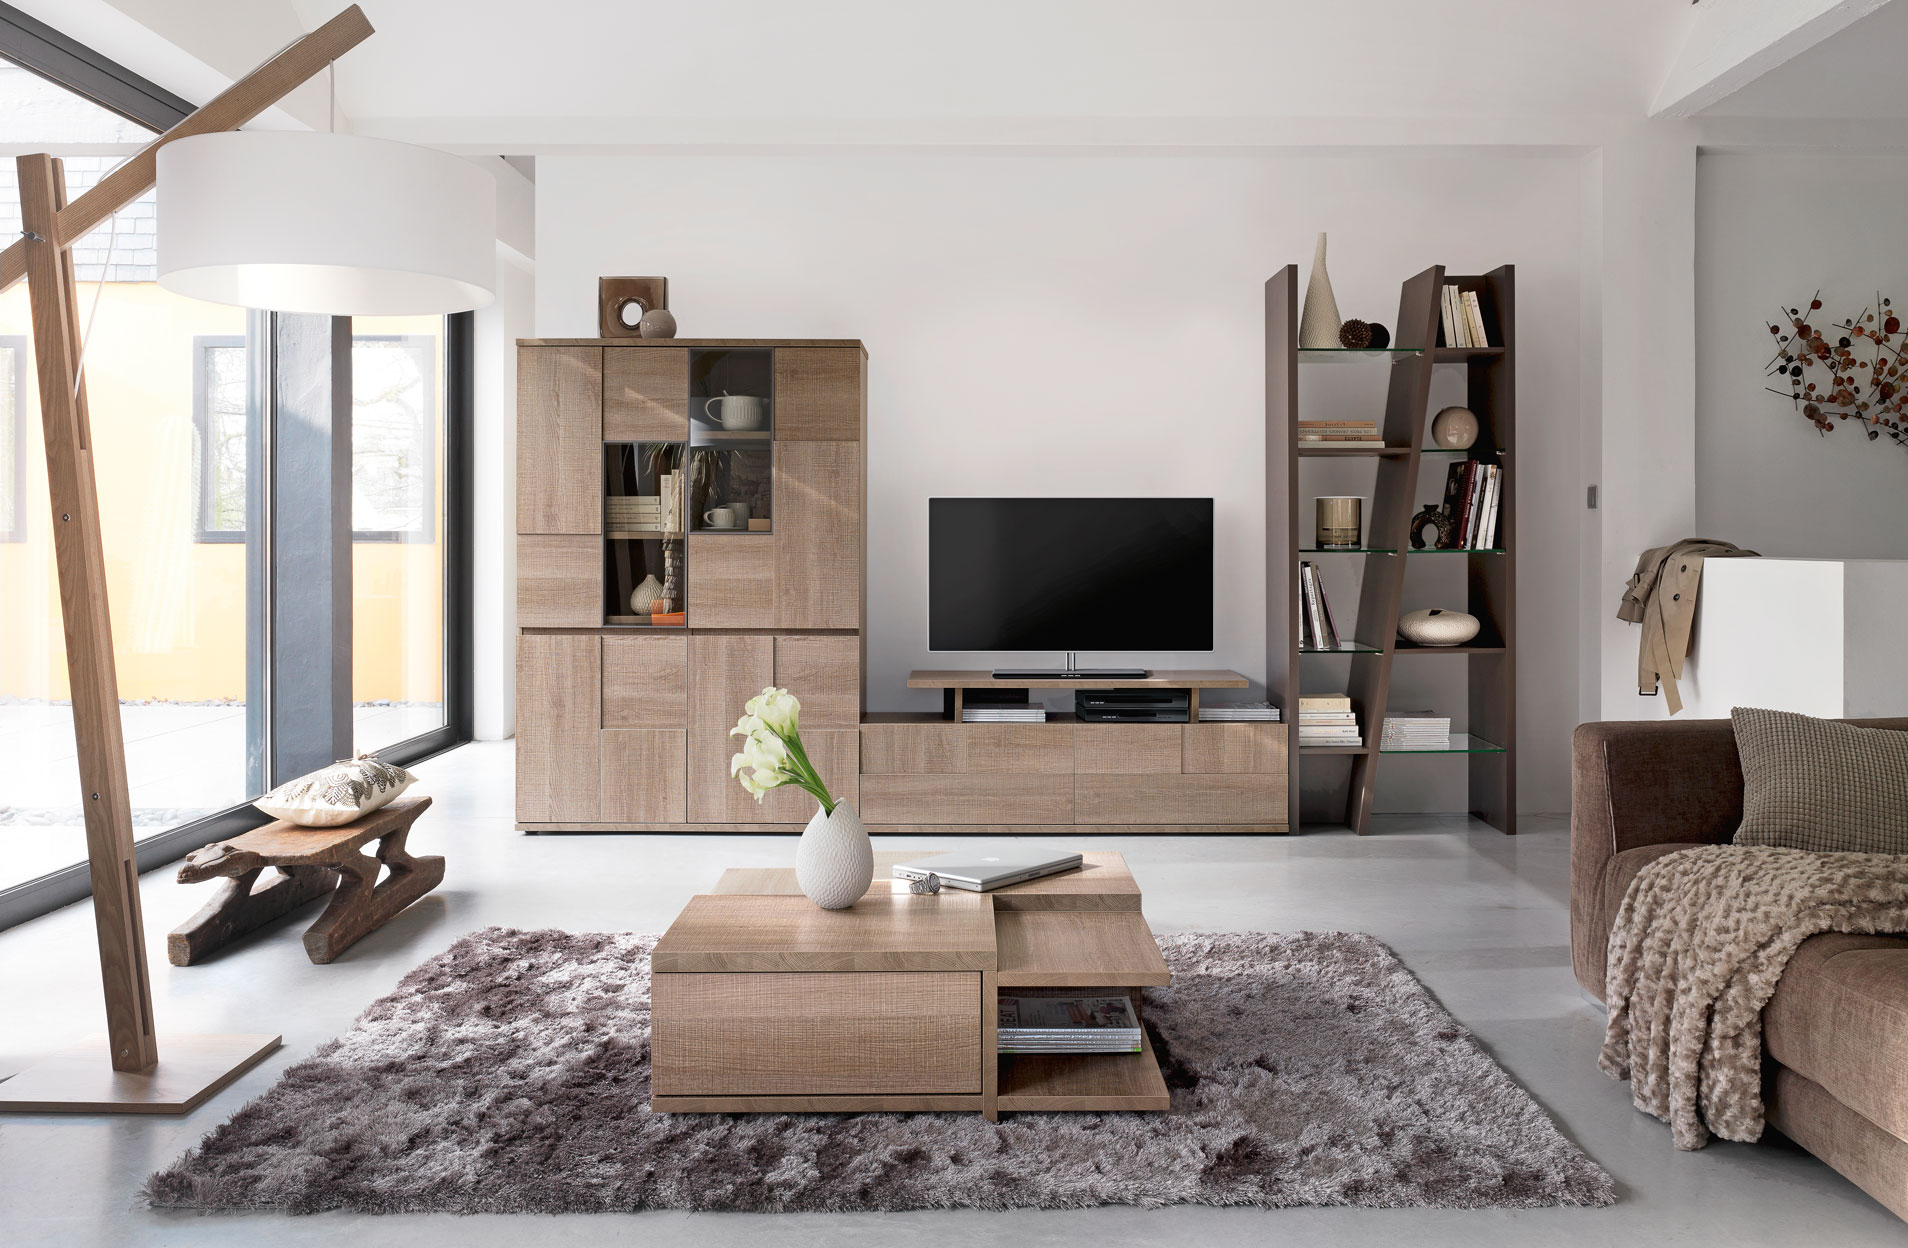 gautier gagnez l 39 int rieur de votre maison deco tendency. Black Bedroom Furniture Sets. Home Design Ideas